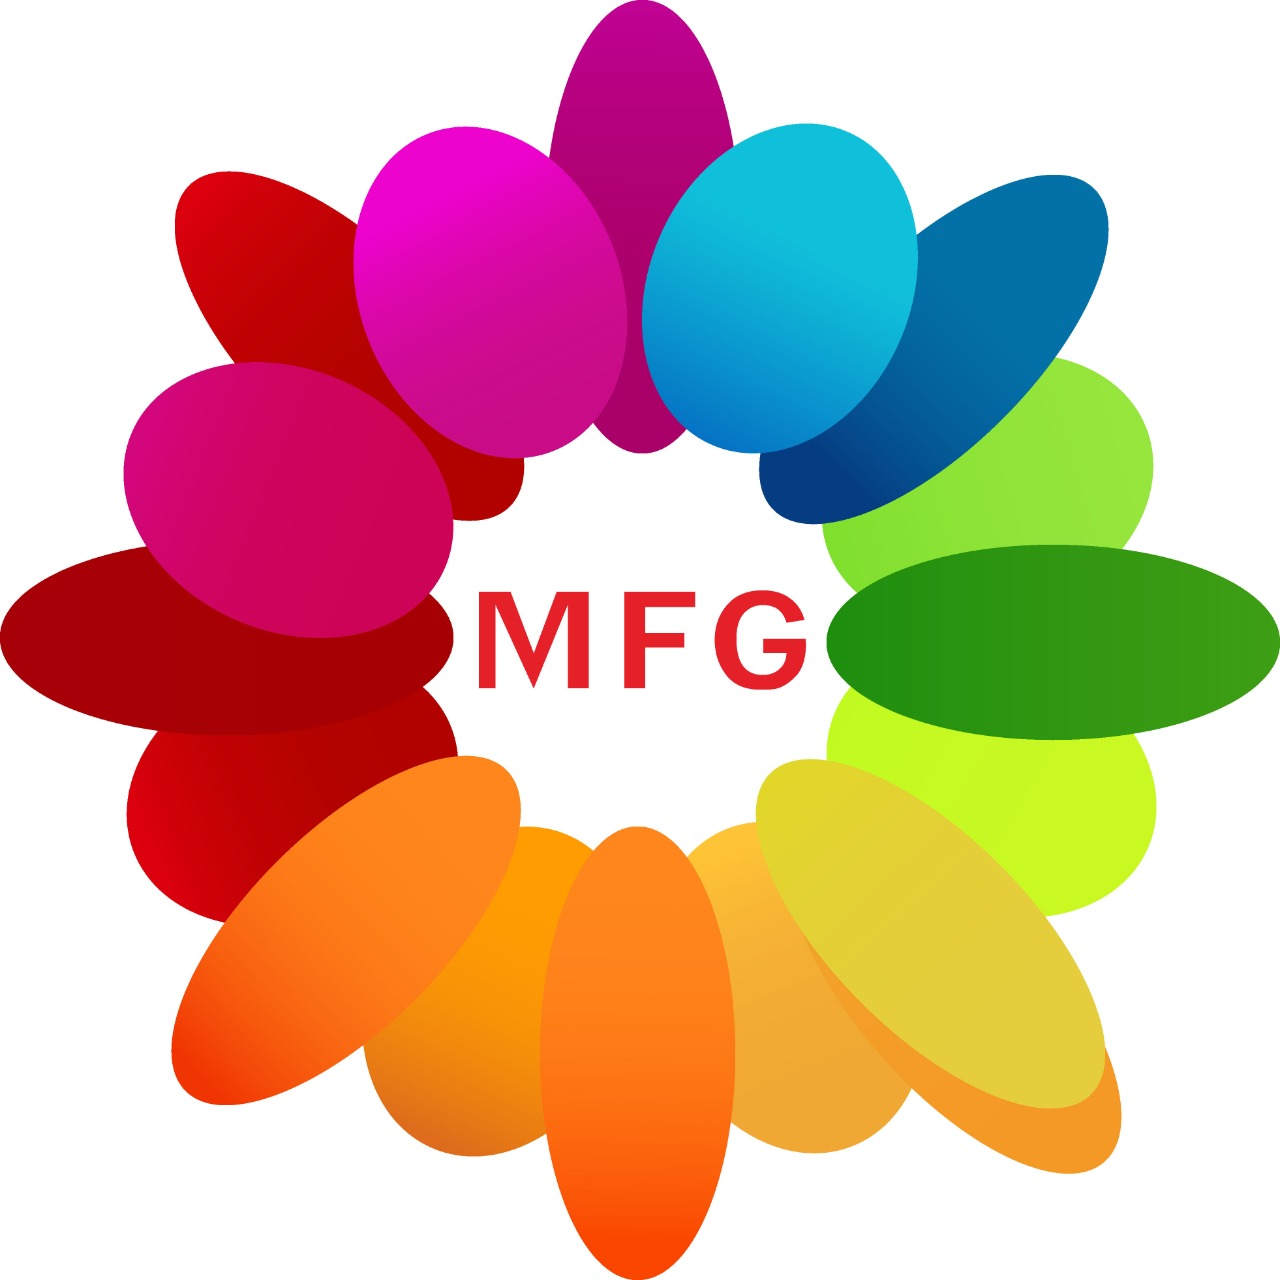 1 kg choco delight cake with knife and candles